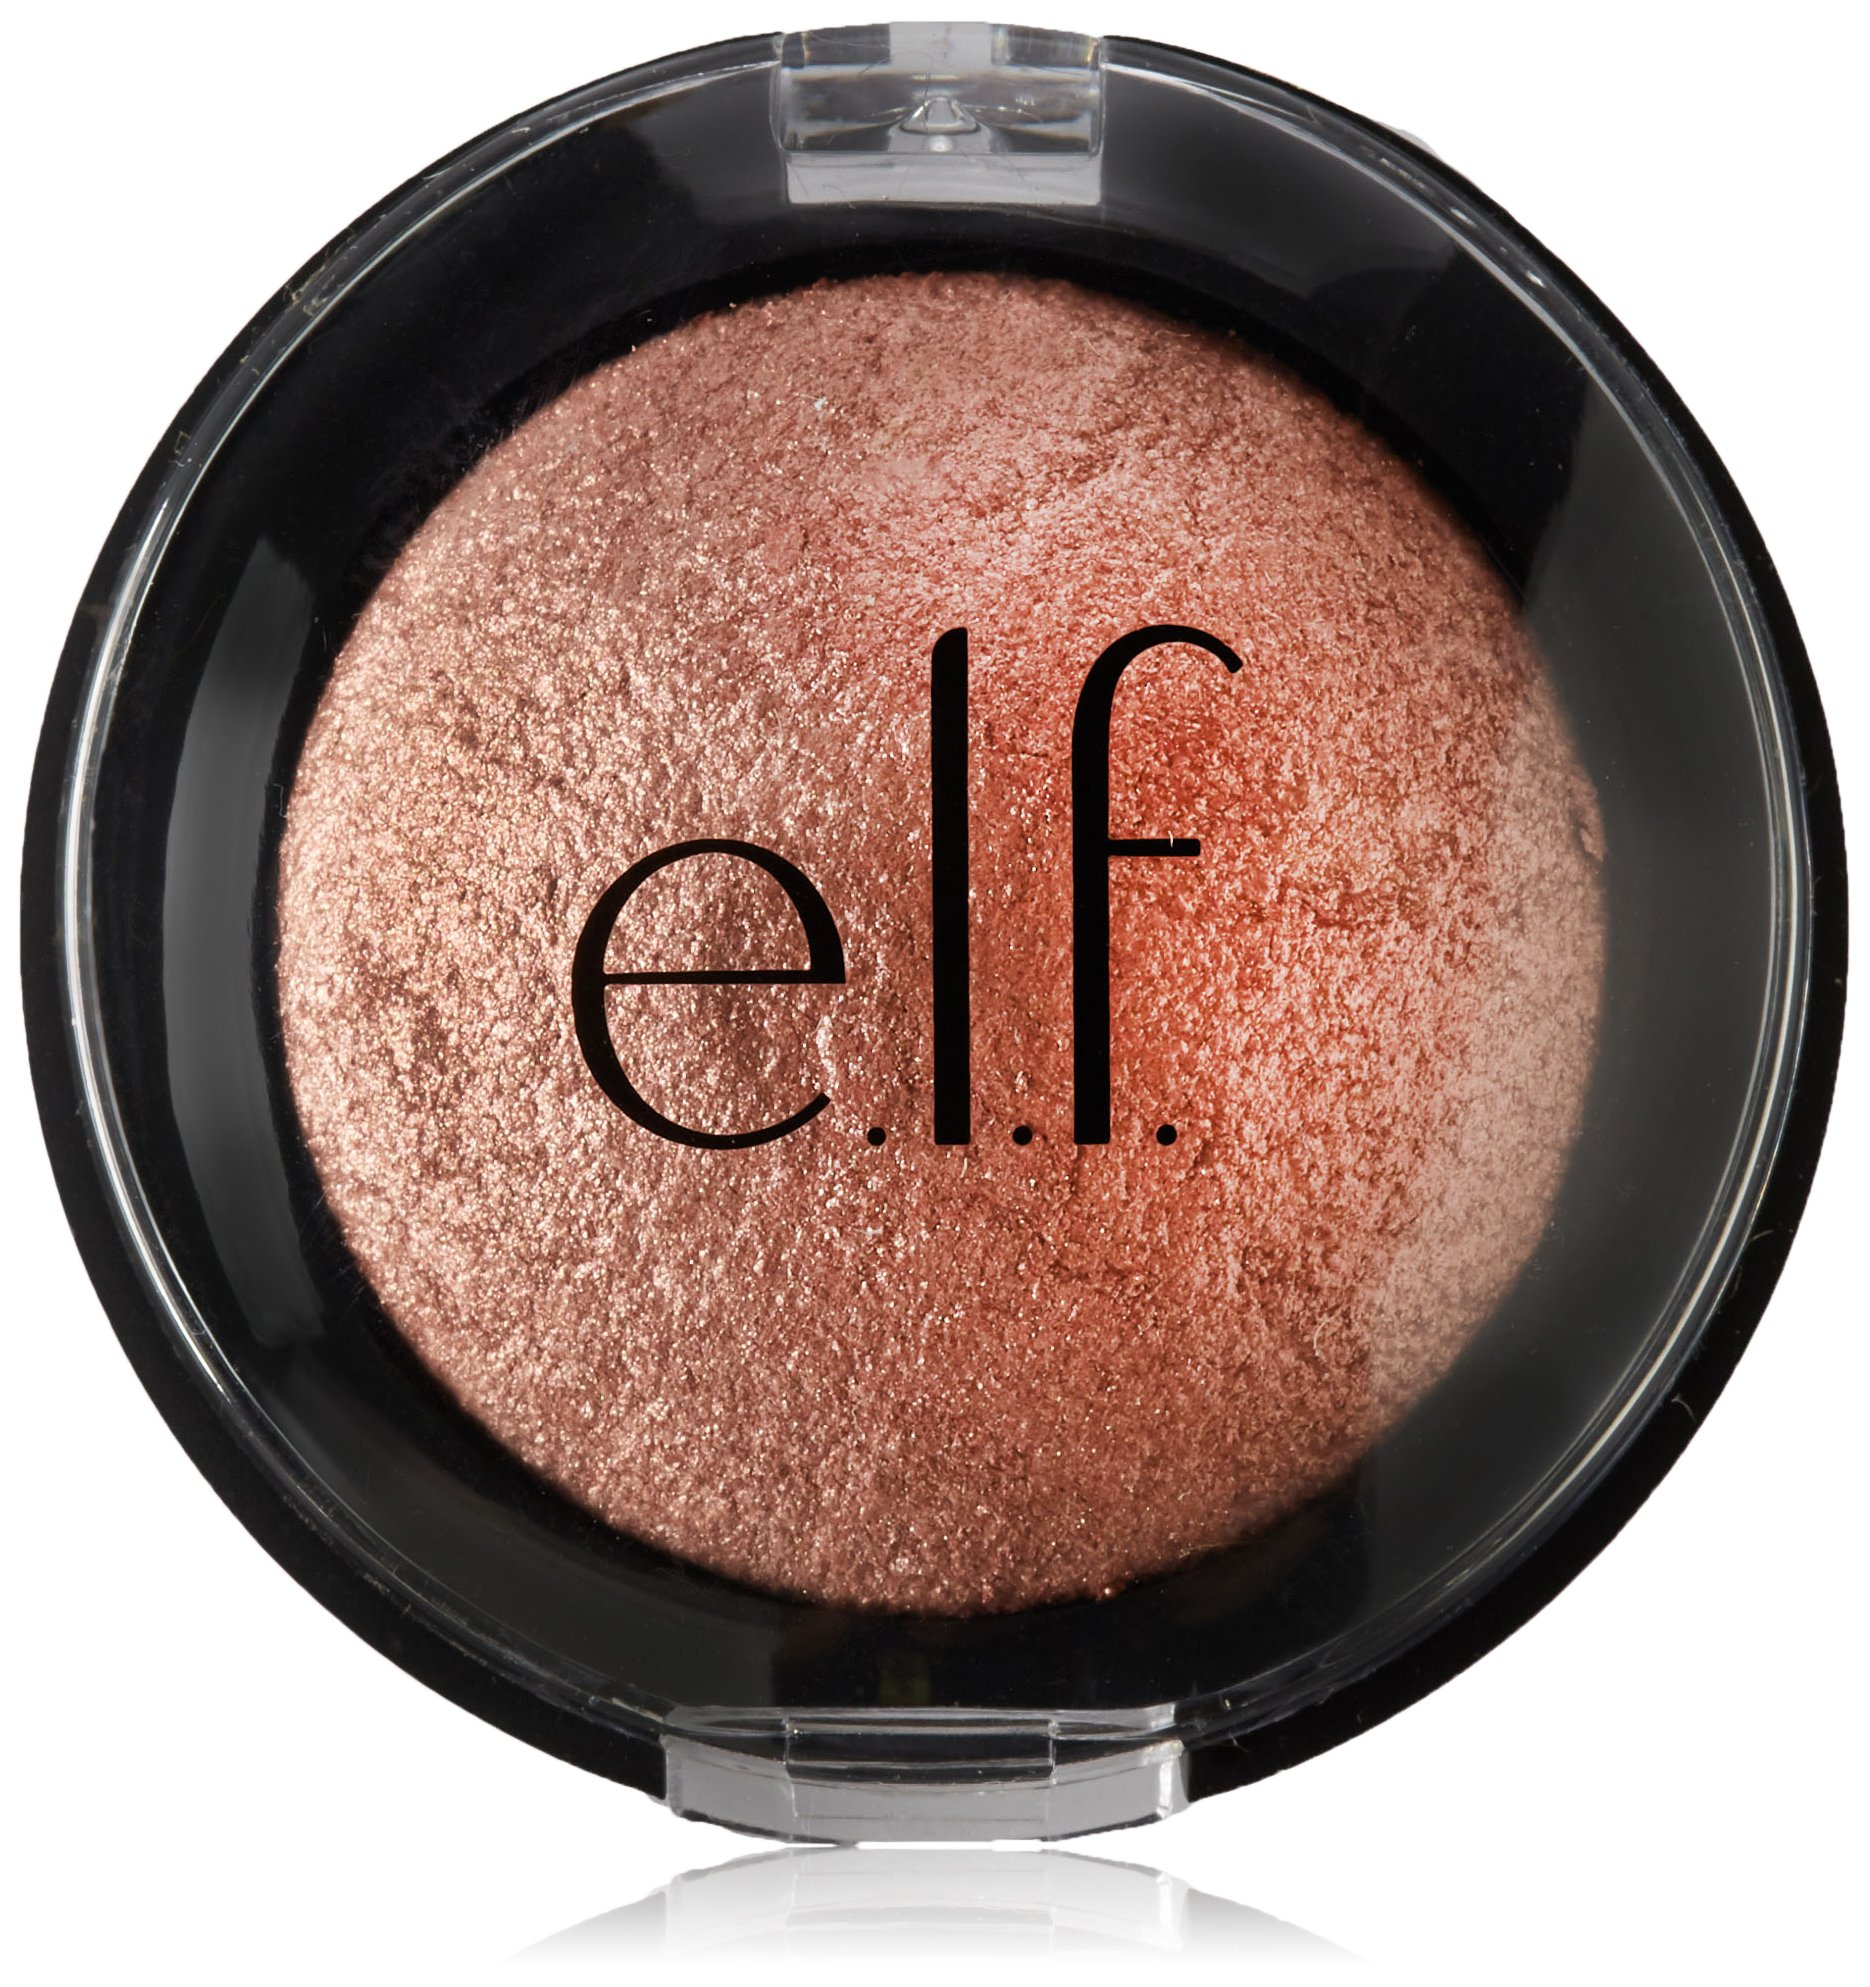 e.l.f. Cosmetics Baked Eyeshadow, Oven-Baked Eyeshadow Offers Rich Pigmentation for Beautiful Eyes, Pixie